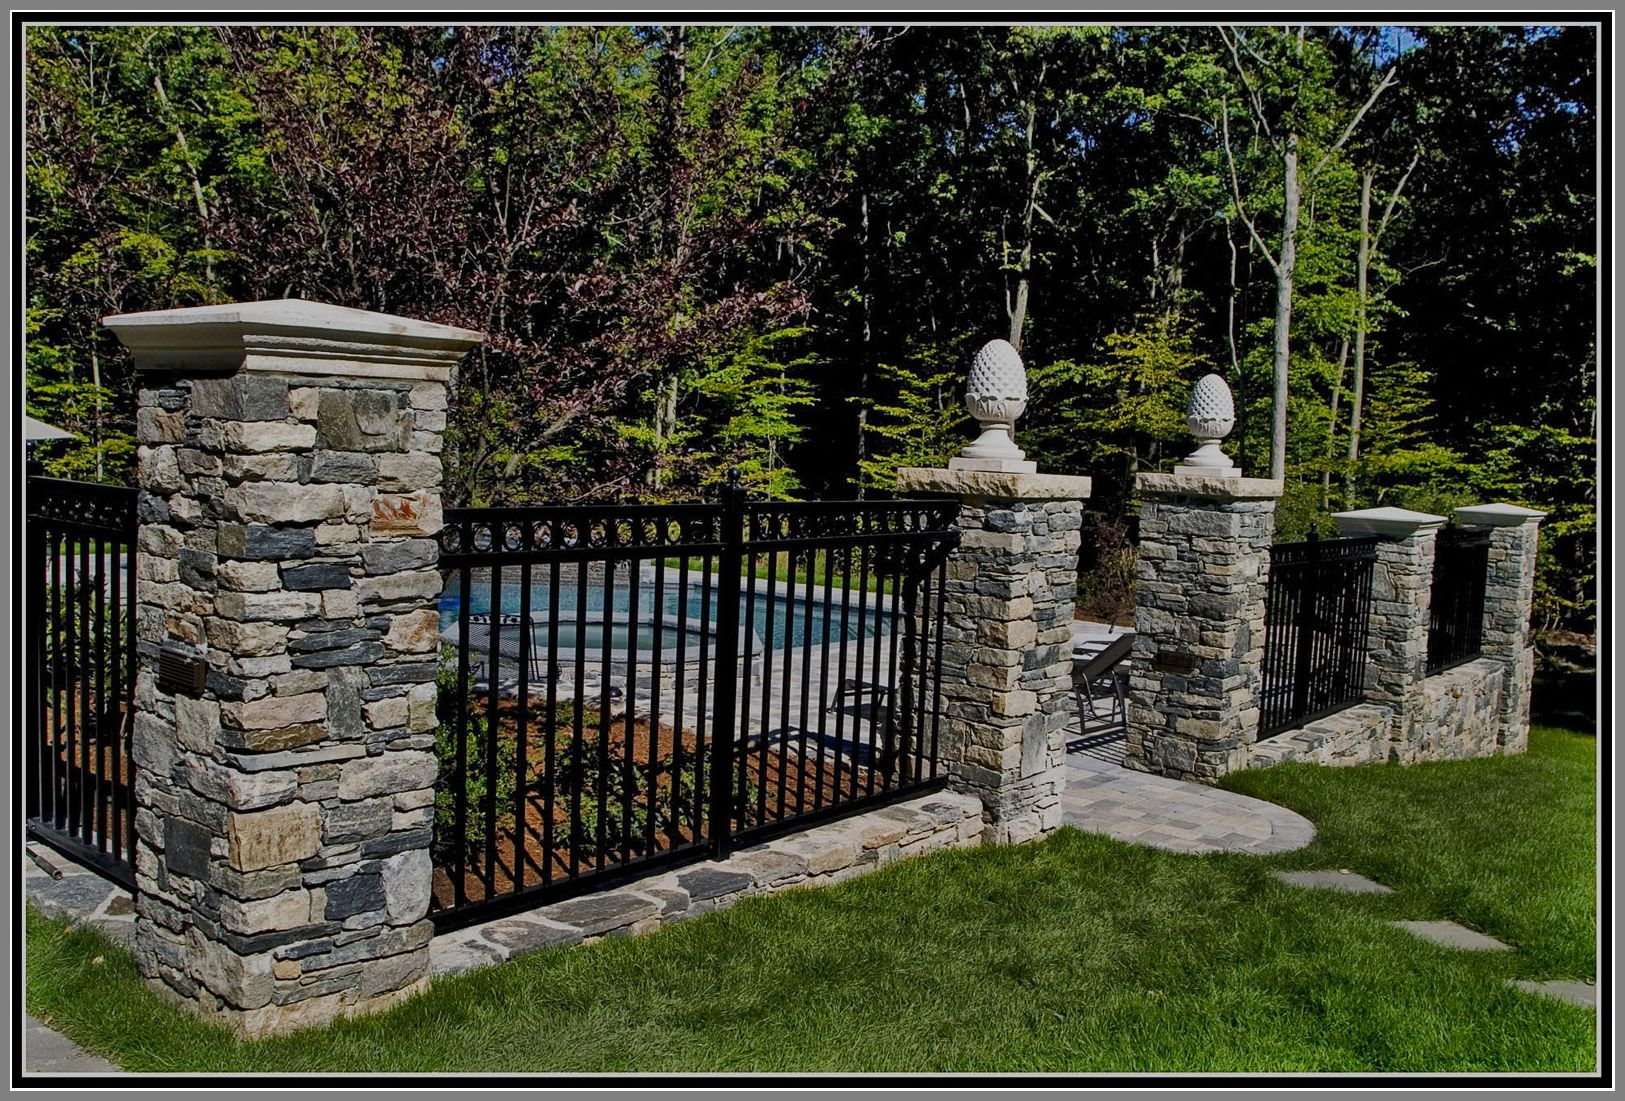 Aluminium Fence With Stone Columns By Artistic Outdoors Aluminum Fence Fence Design Brick Fence